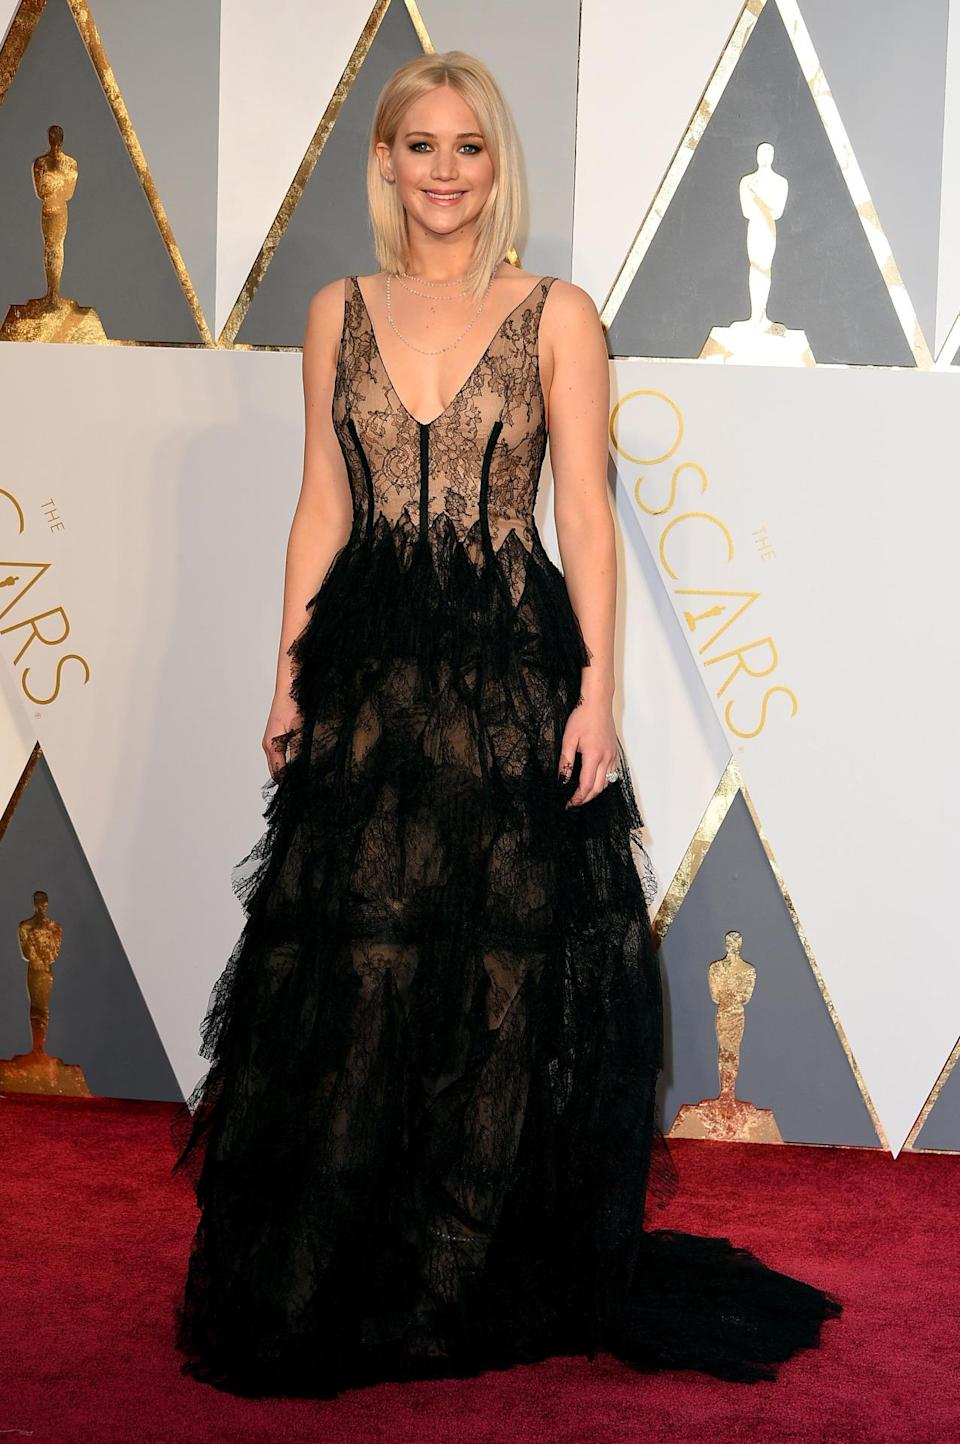 <p>Jennifer Lawrence obviously wore Dior, but the fact that she's one of the worst dressed is definitely a surprise. The star, nominated for Best Actress for her role in <i>Joy</i>, channeled Gwyneth Paltrow in a black lace number with ruffles on the skirt. <i><i>(Photo: Getty Images)</i></i></p>